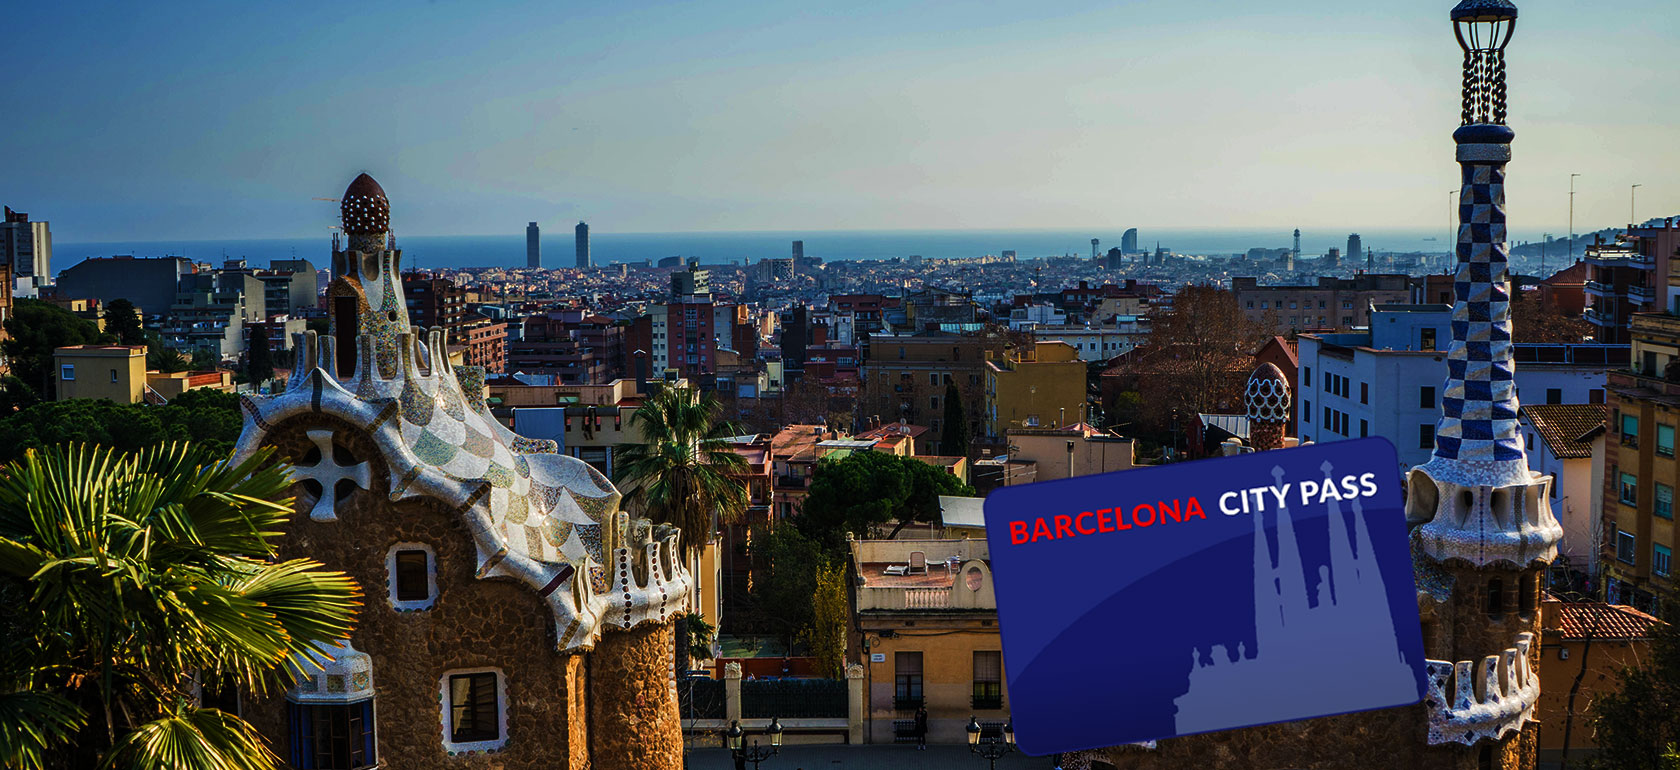 Barcelona City Pass (inkl. Sagrada Familia Deutsch Tour und Park Güell)